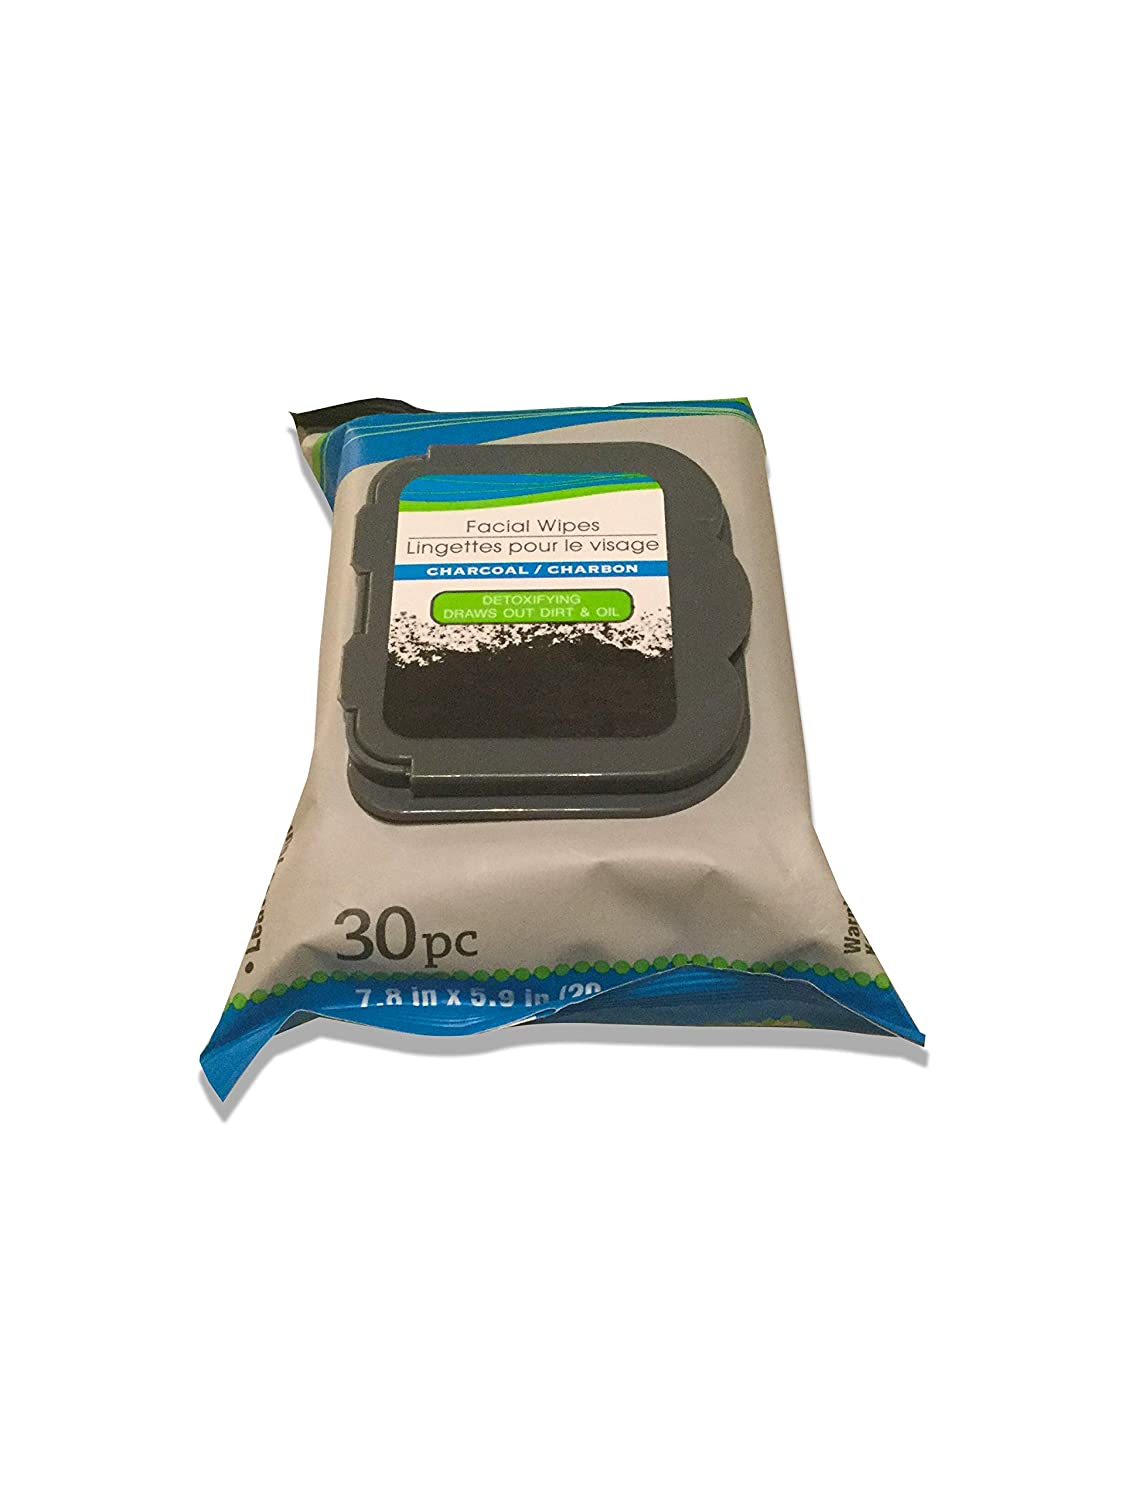 Charcoal Facial Wipes For Cleansing Skin - Detoxifying and Deep Cleansing Facial Wipes - 30 Count